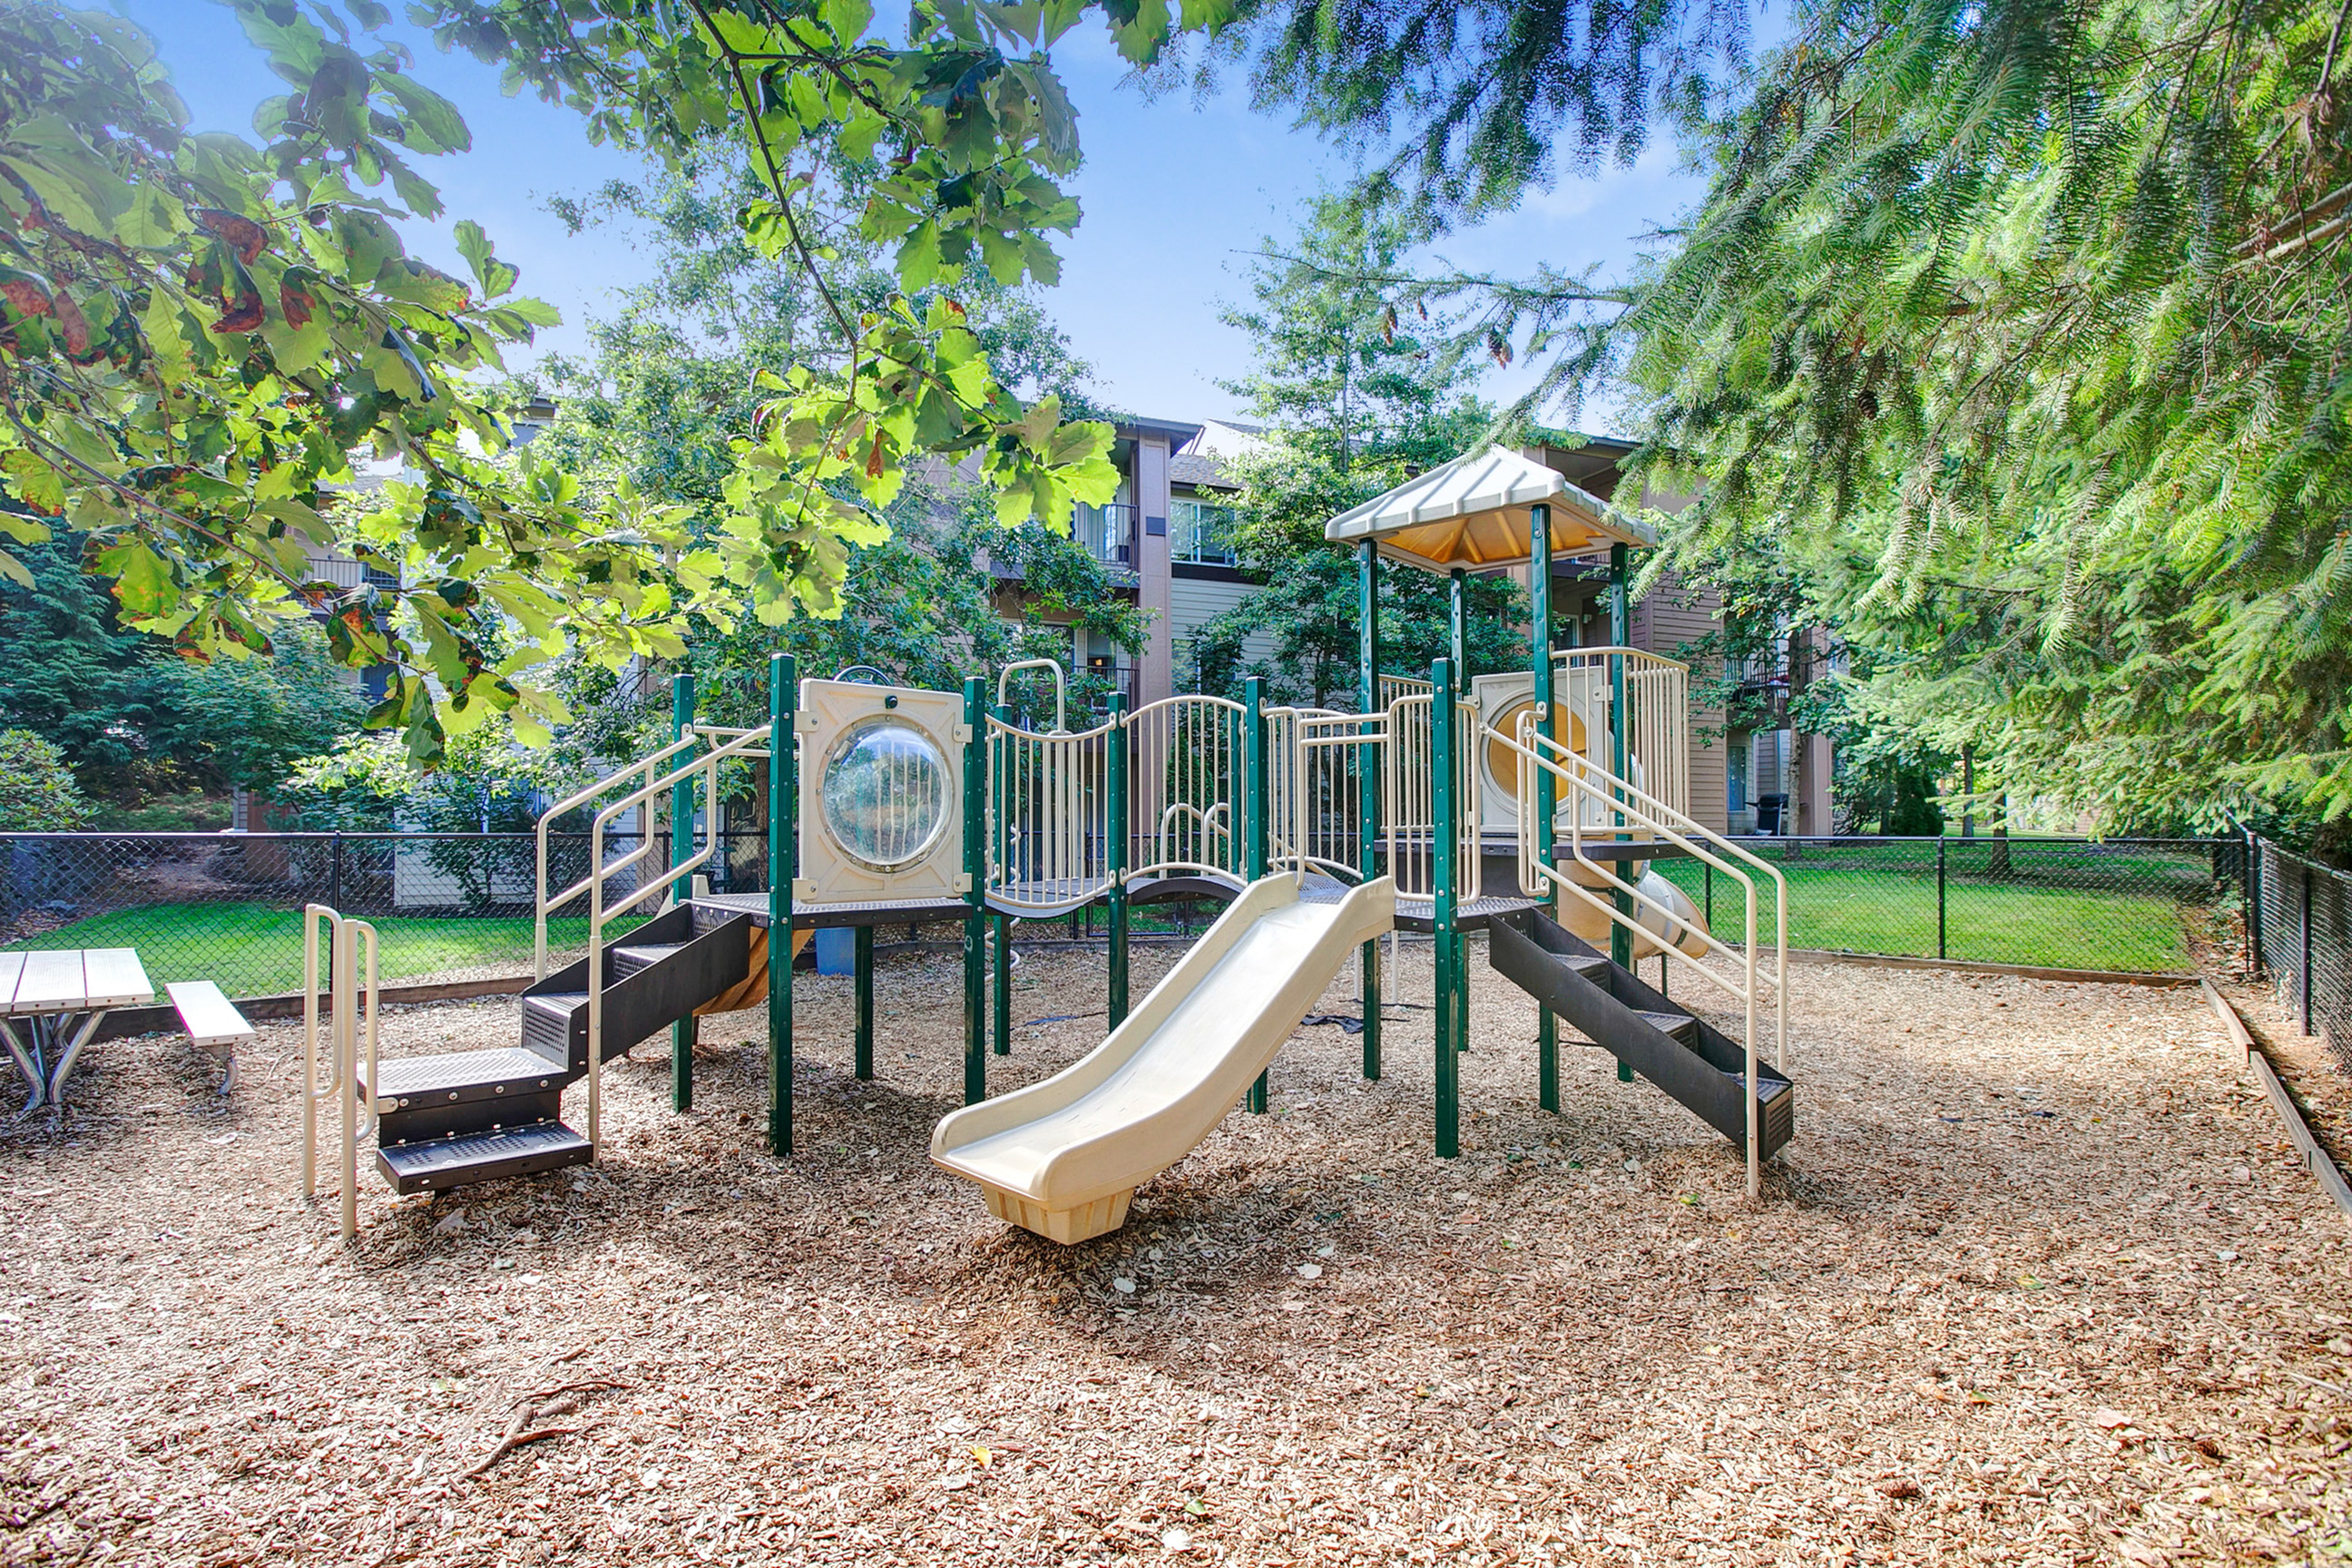 View of Fenced Playground, Showing Equipment and Landscaping at Scott Mountain Apartments